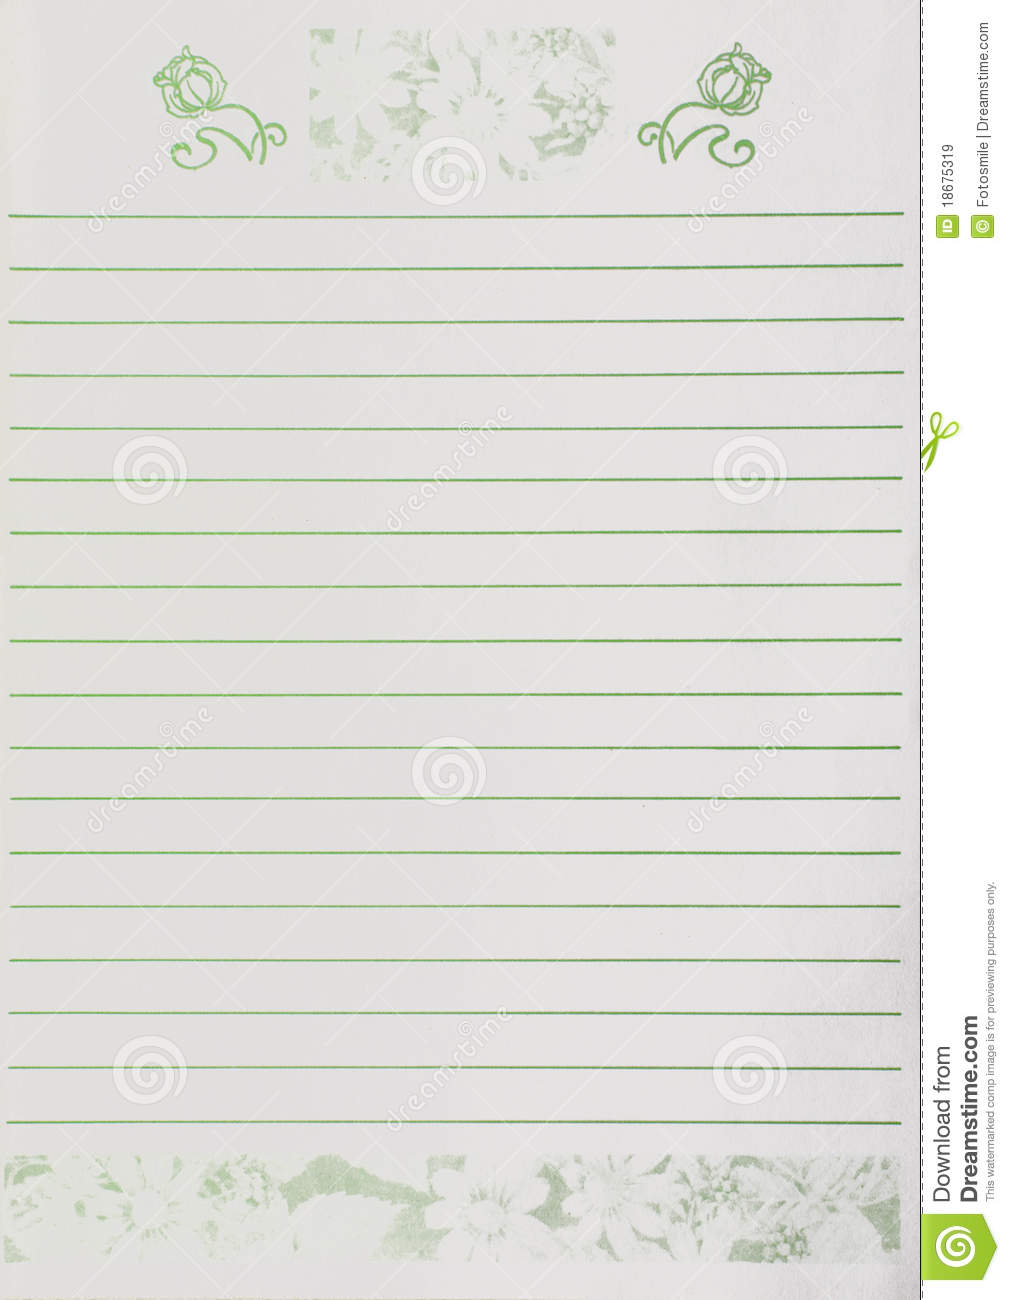 Girly Sheet Of Paper Royalty Free Stock Images - Image: 18675319